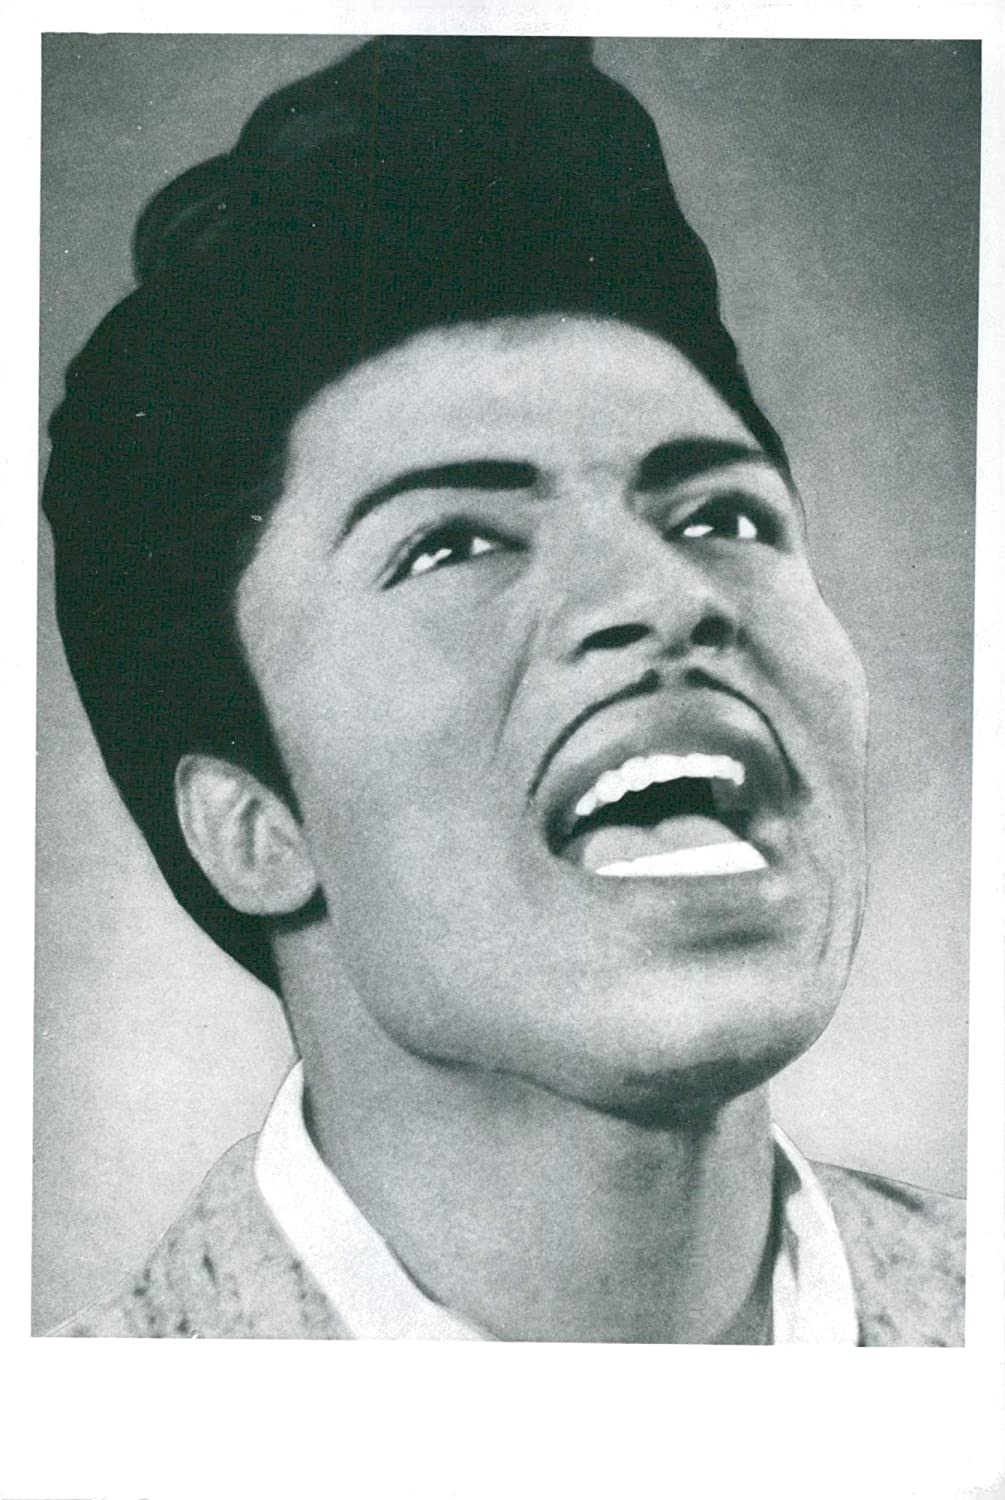 Amazon.com: Vintage photo of Picture of Little Richard from the TV ...